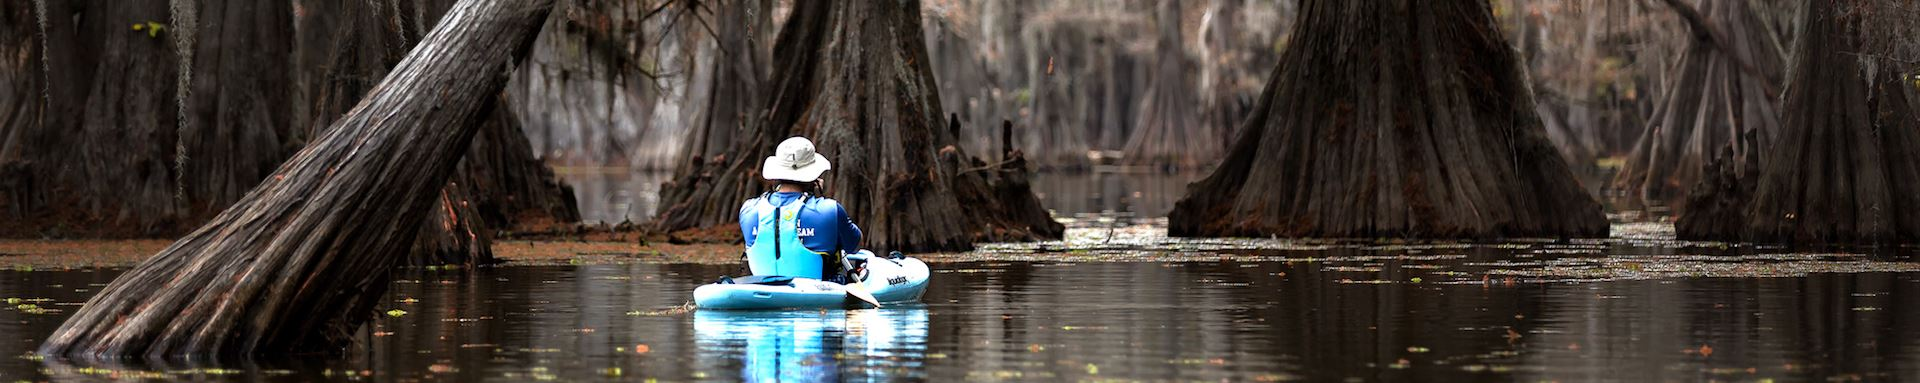 Kayaker on Caddo Lake